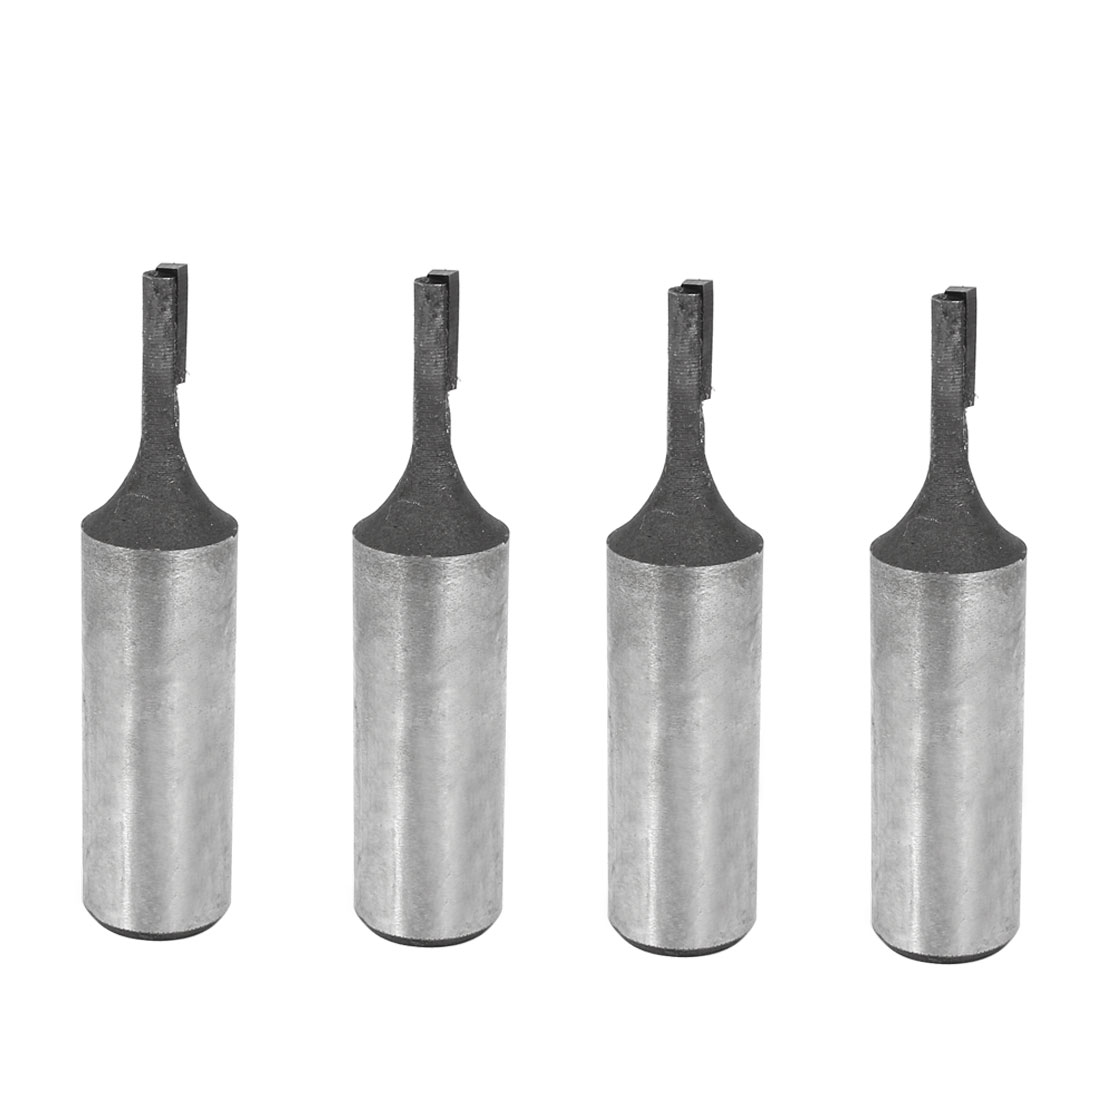 "Carpentry 1/2"" Shank 5/32"" Cutting Dia Single Flute Straight Router Bit 4 Pcs"